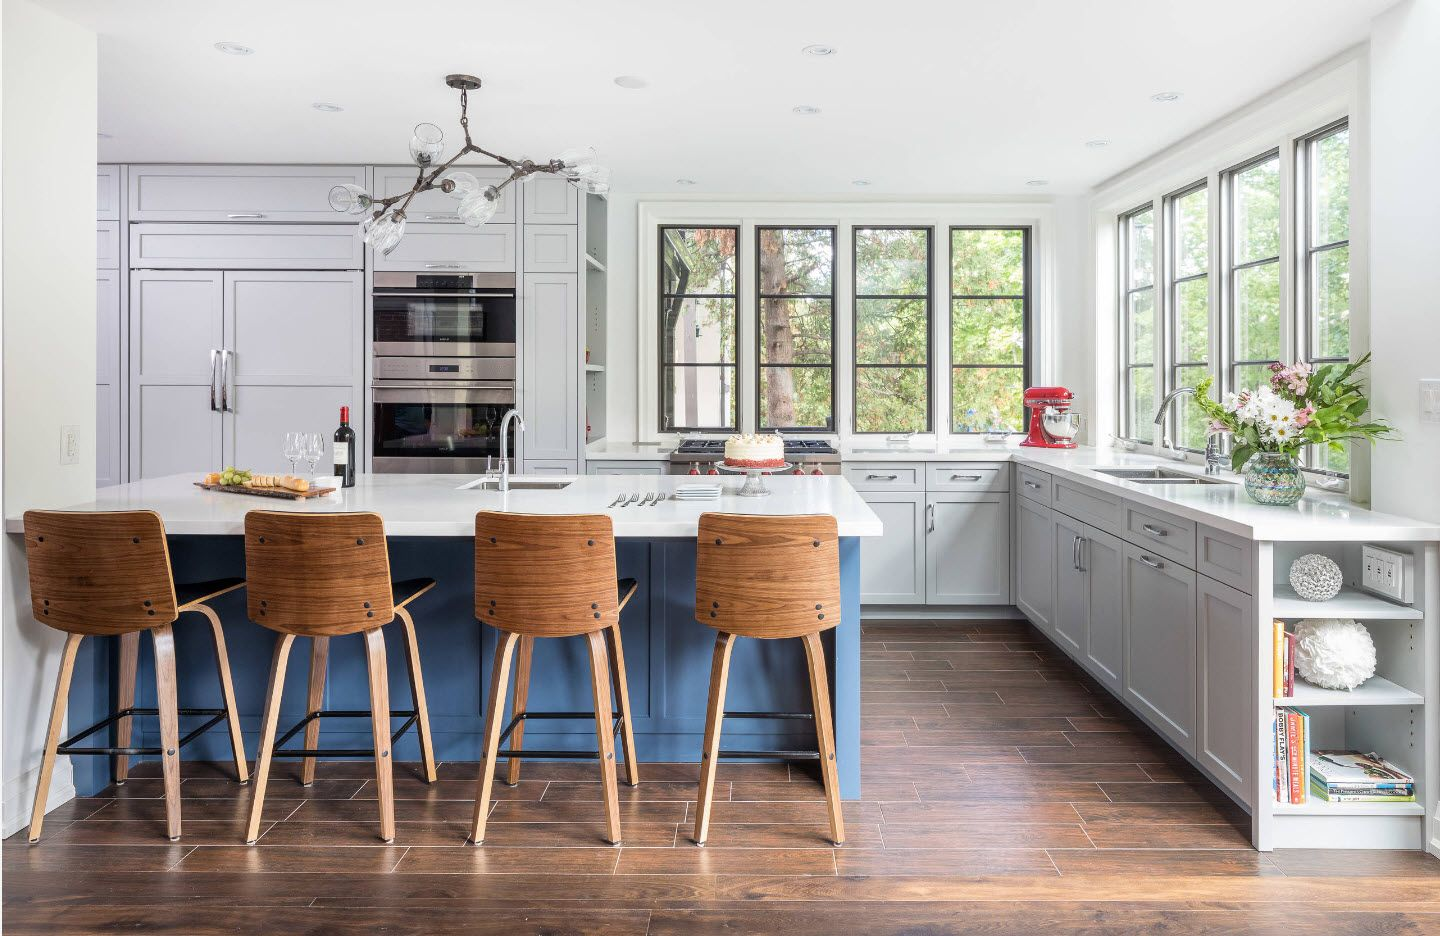 Nice modern formed wooden chairs at the kitchen island